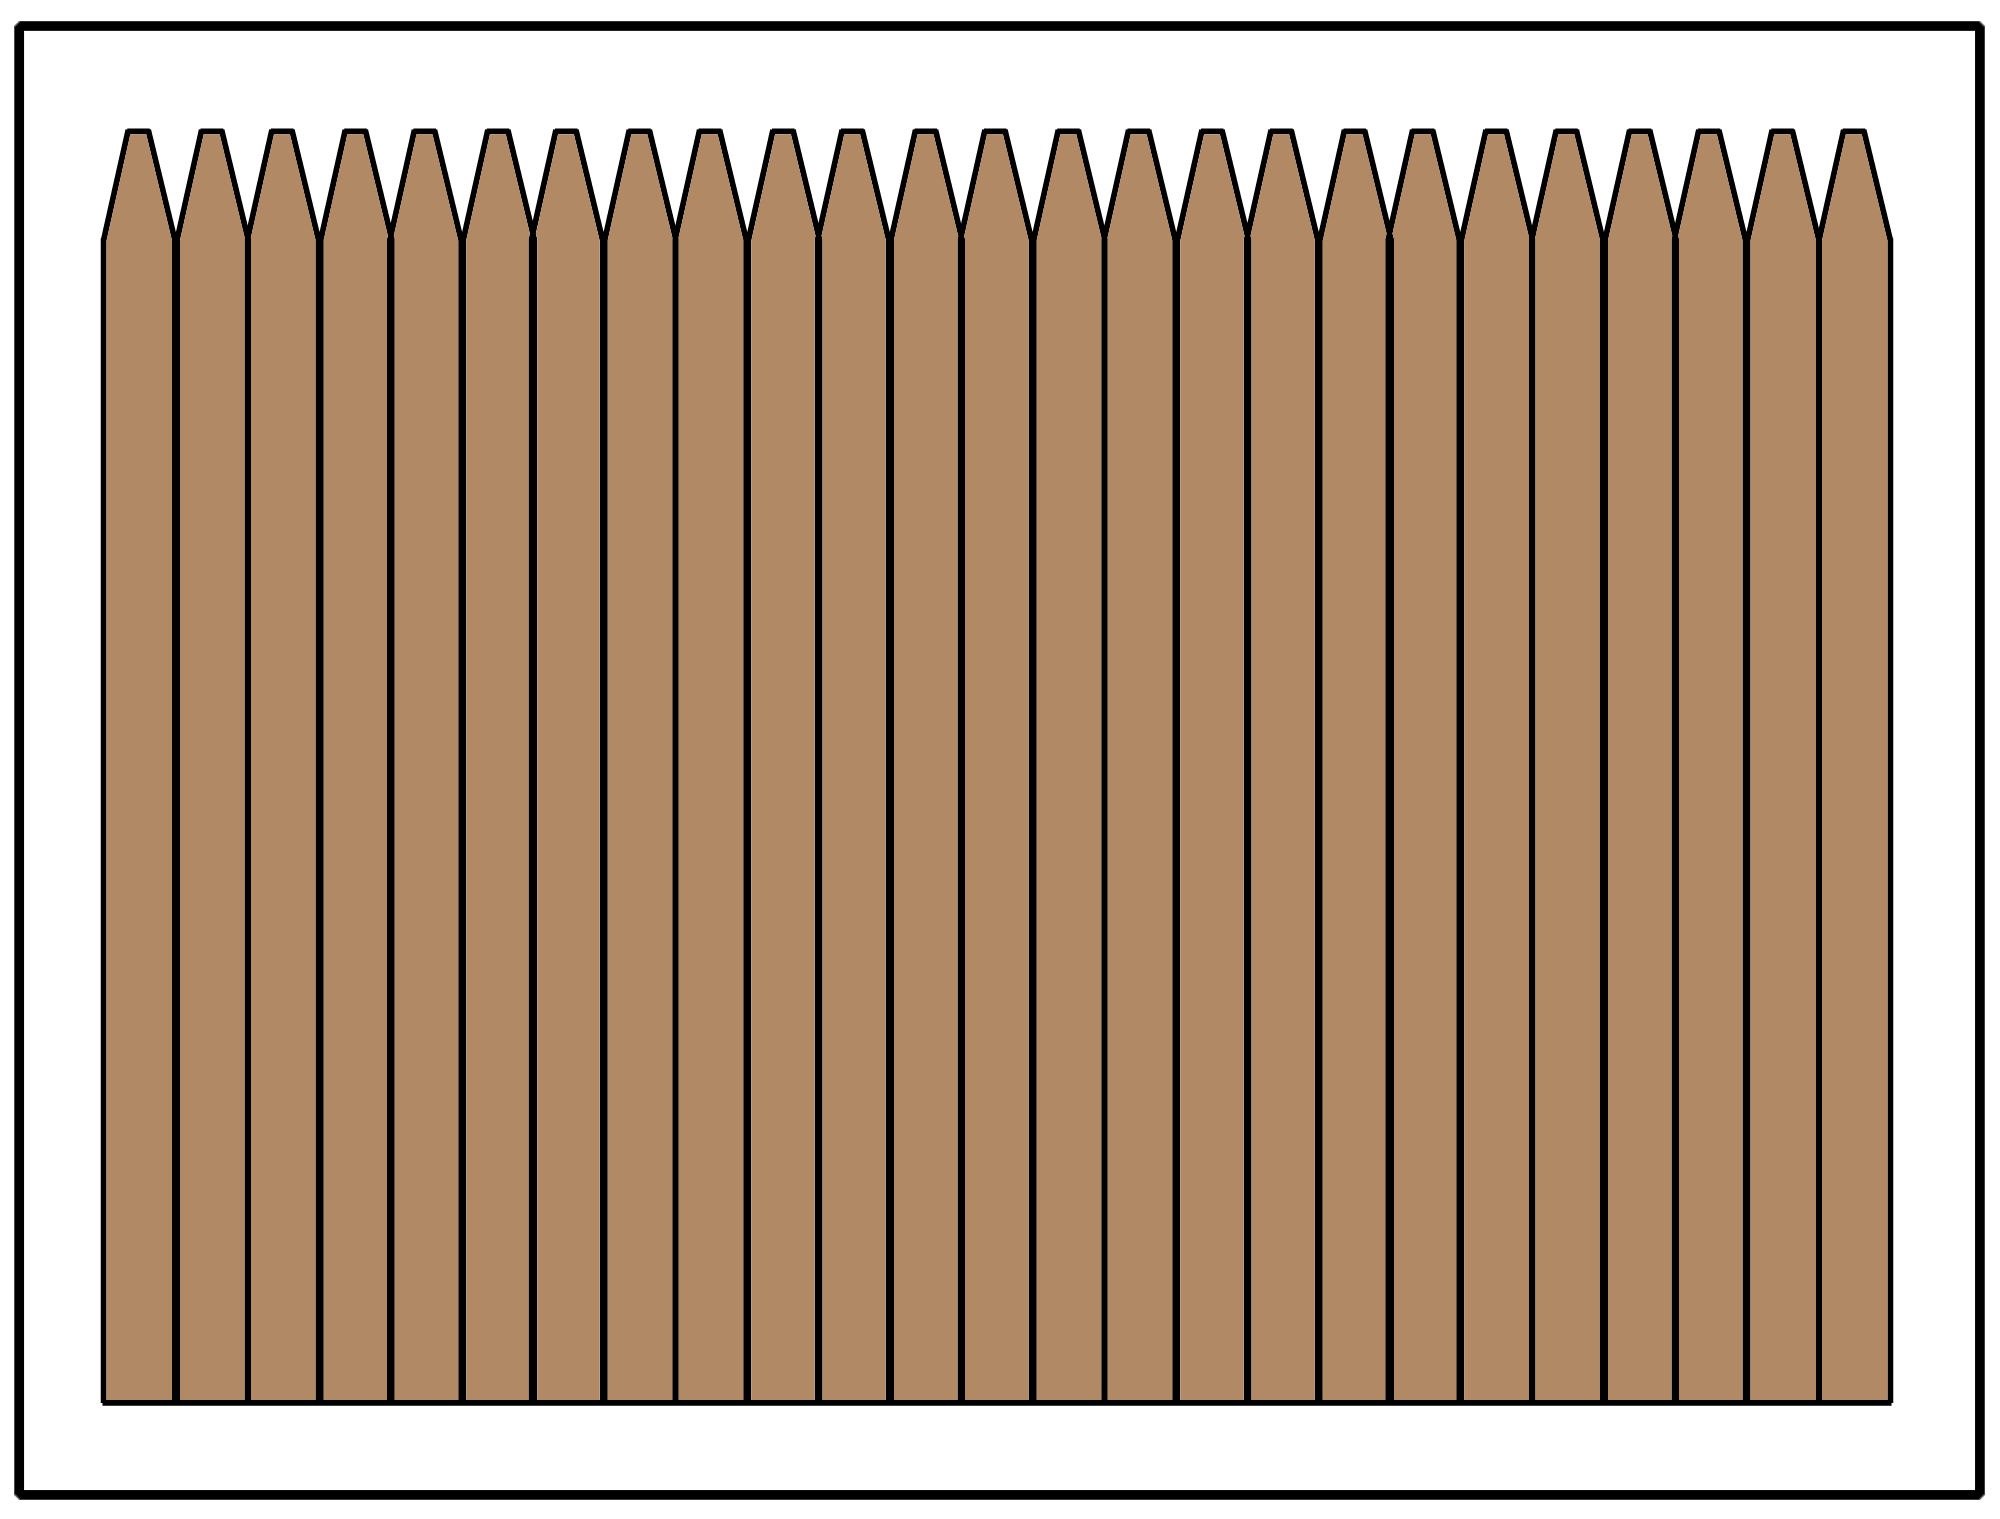 Privacy fence using a thin picket, also referred to as a stockade style fence